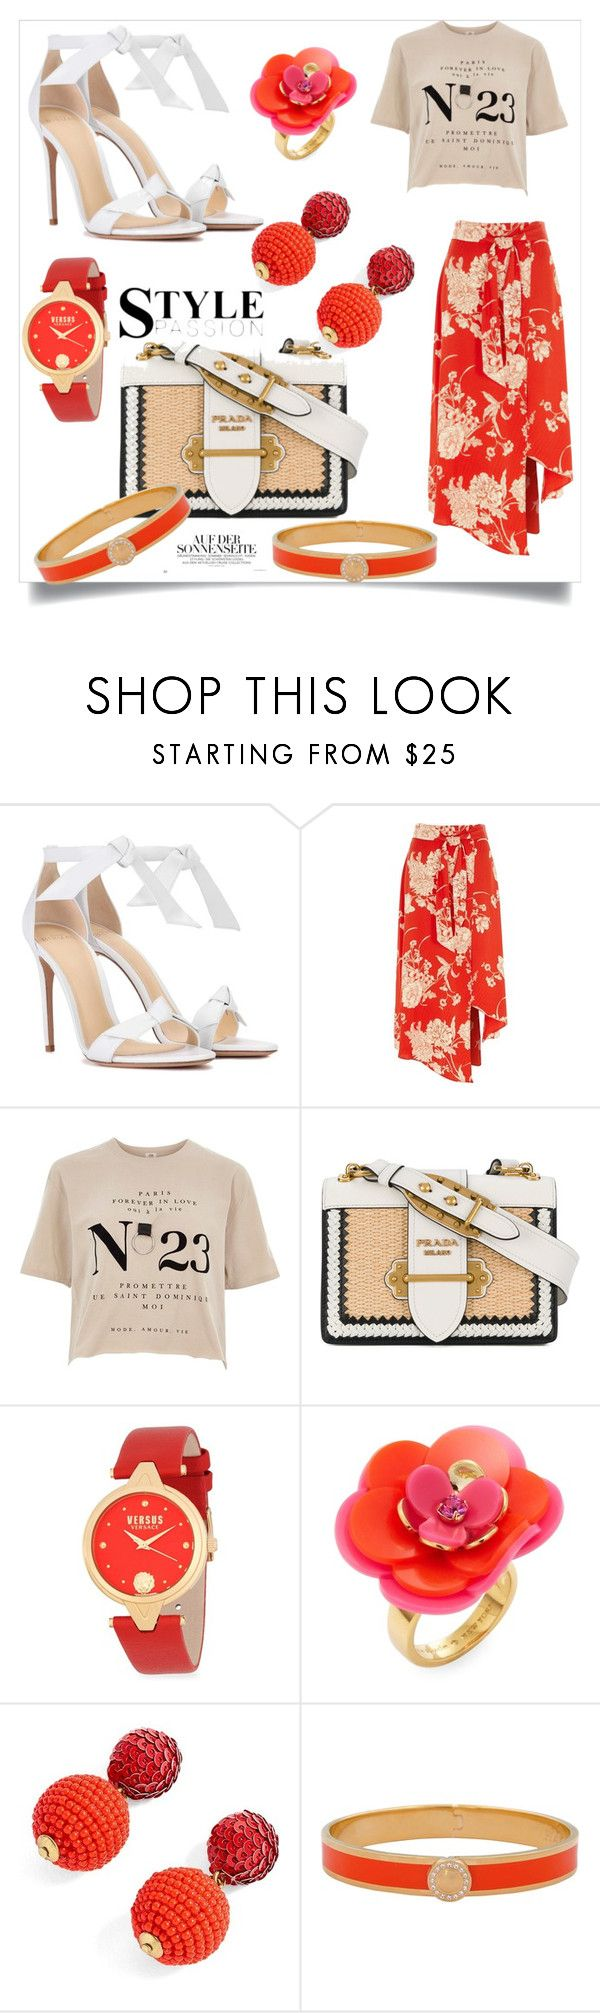 """passion orange"" by harrietta103 on Polyvore featuring Alexandre Birman, River Island, Prada, Versus, Kate Spade, J.Crew, Halcyon Days and StreetStyle"